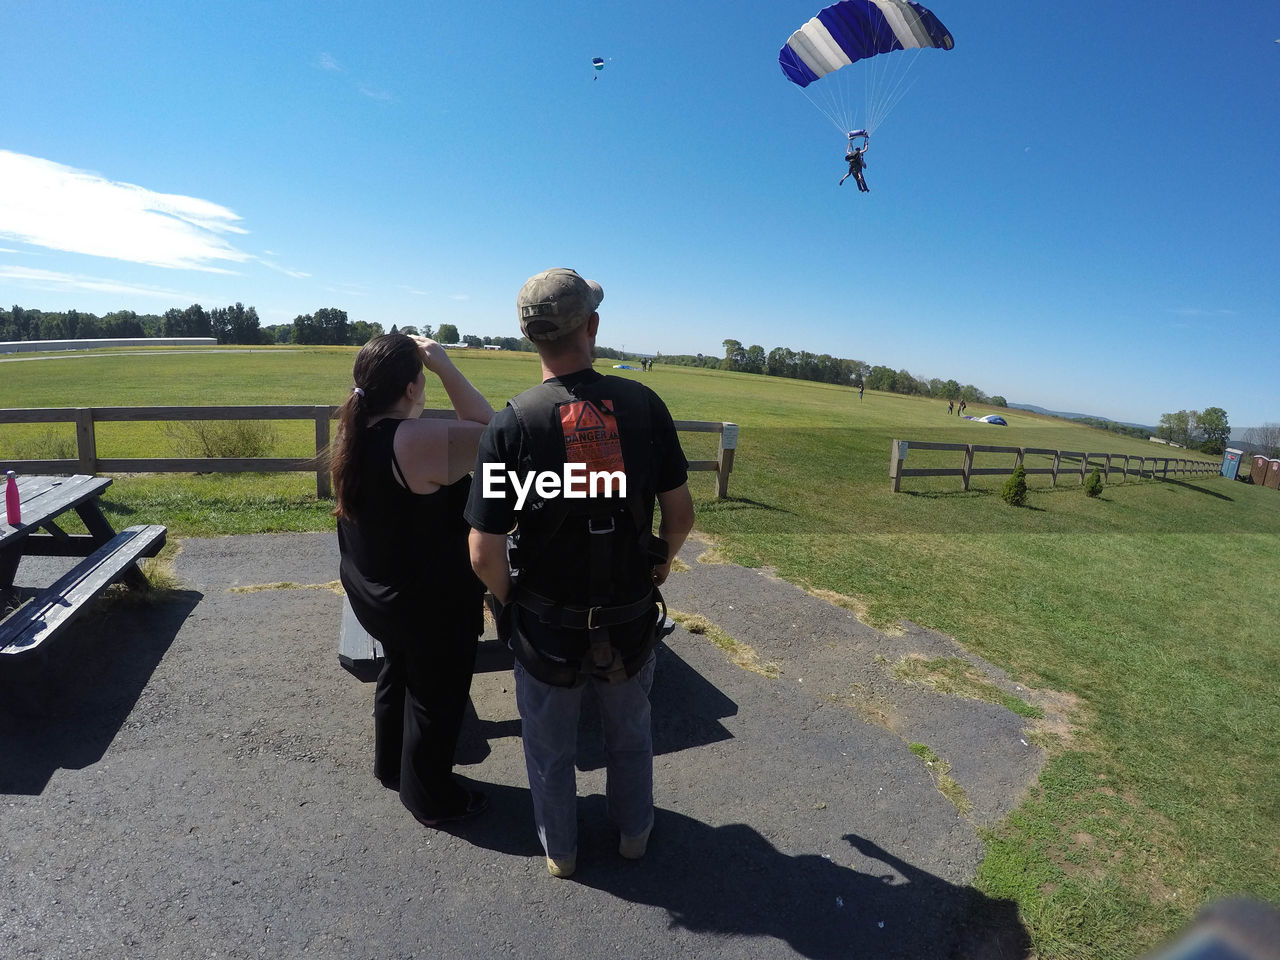 grass, field, leisure activity, real people, day, rear view, men, sunlight, two people, lifestyles, sky, adventure, shadow, parachute, sport, outdoors, landscape, clear sky, nature, paragliding, people, adult